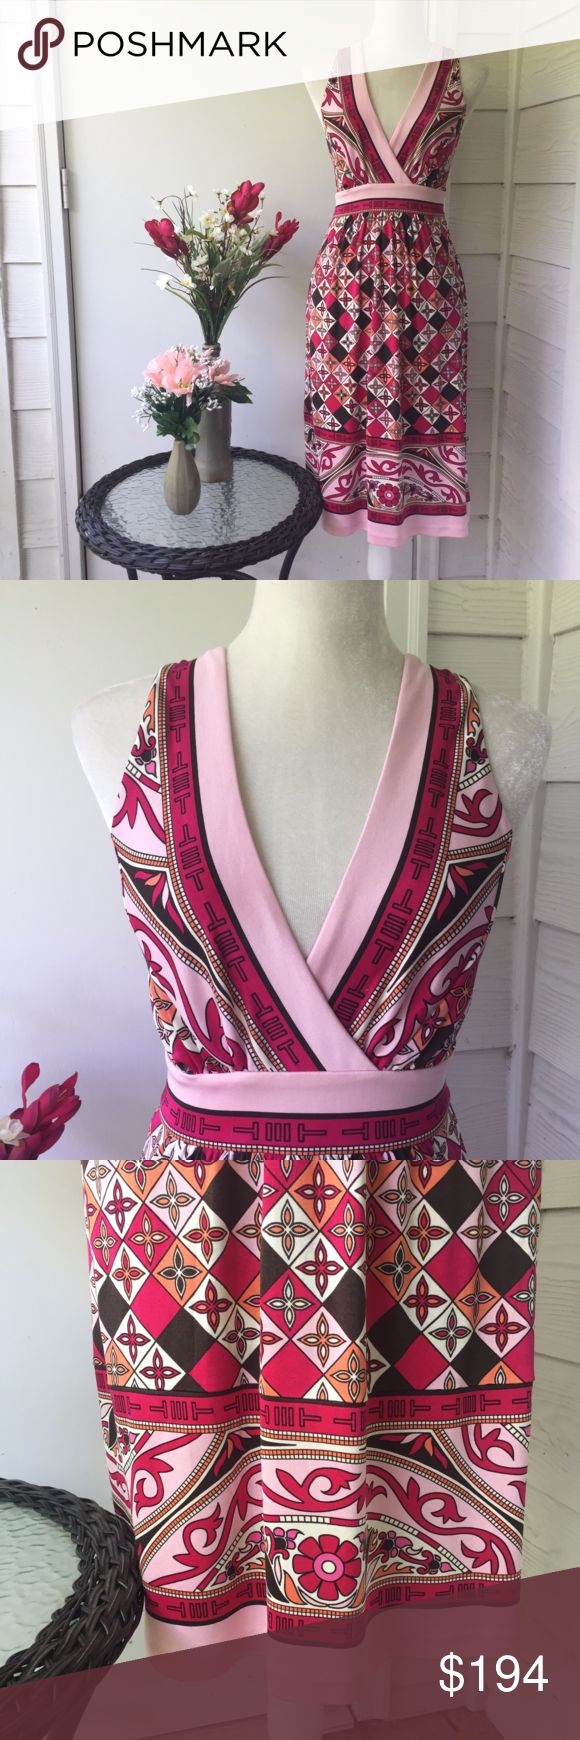 NWT Tory Burch Pink Floral Patterned Empire Dress Gorgeous brand new Tory Burch dress with pink and orange floral pattern. Empire waist with deep v neck and a nice flowy skirt. Straps go up over the shoulder and cross in the back and button. Really nice pink details around the hem, neckline, and the waist. Measurements are shown in the images, the first measurement picture is the empire waist and the second is the length from the top of that waist band to the hem. The bust is lined, but the…